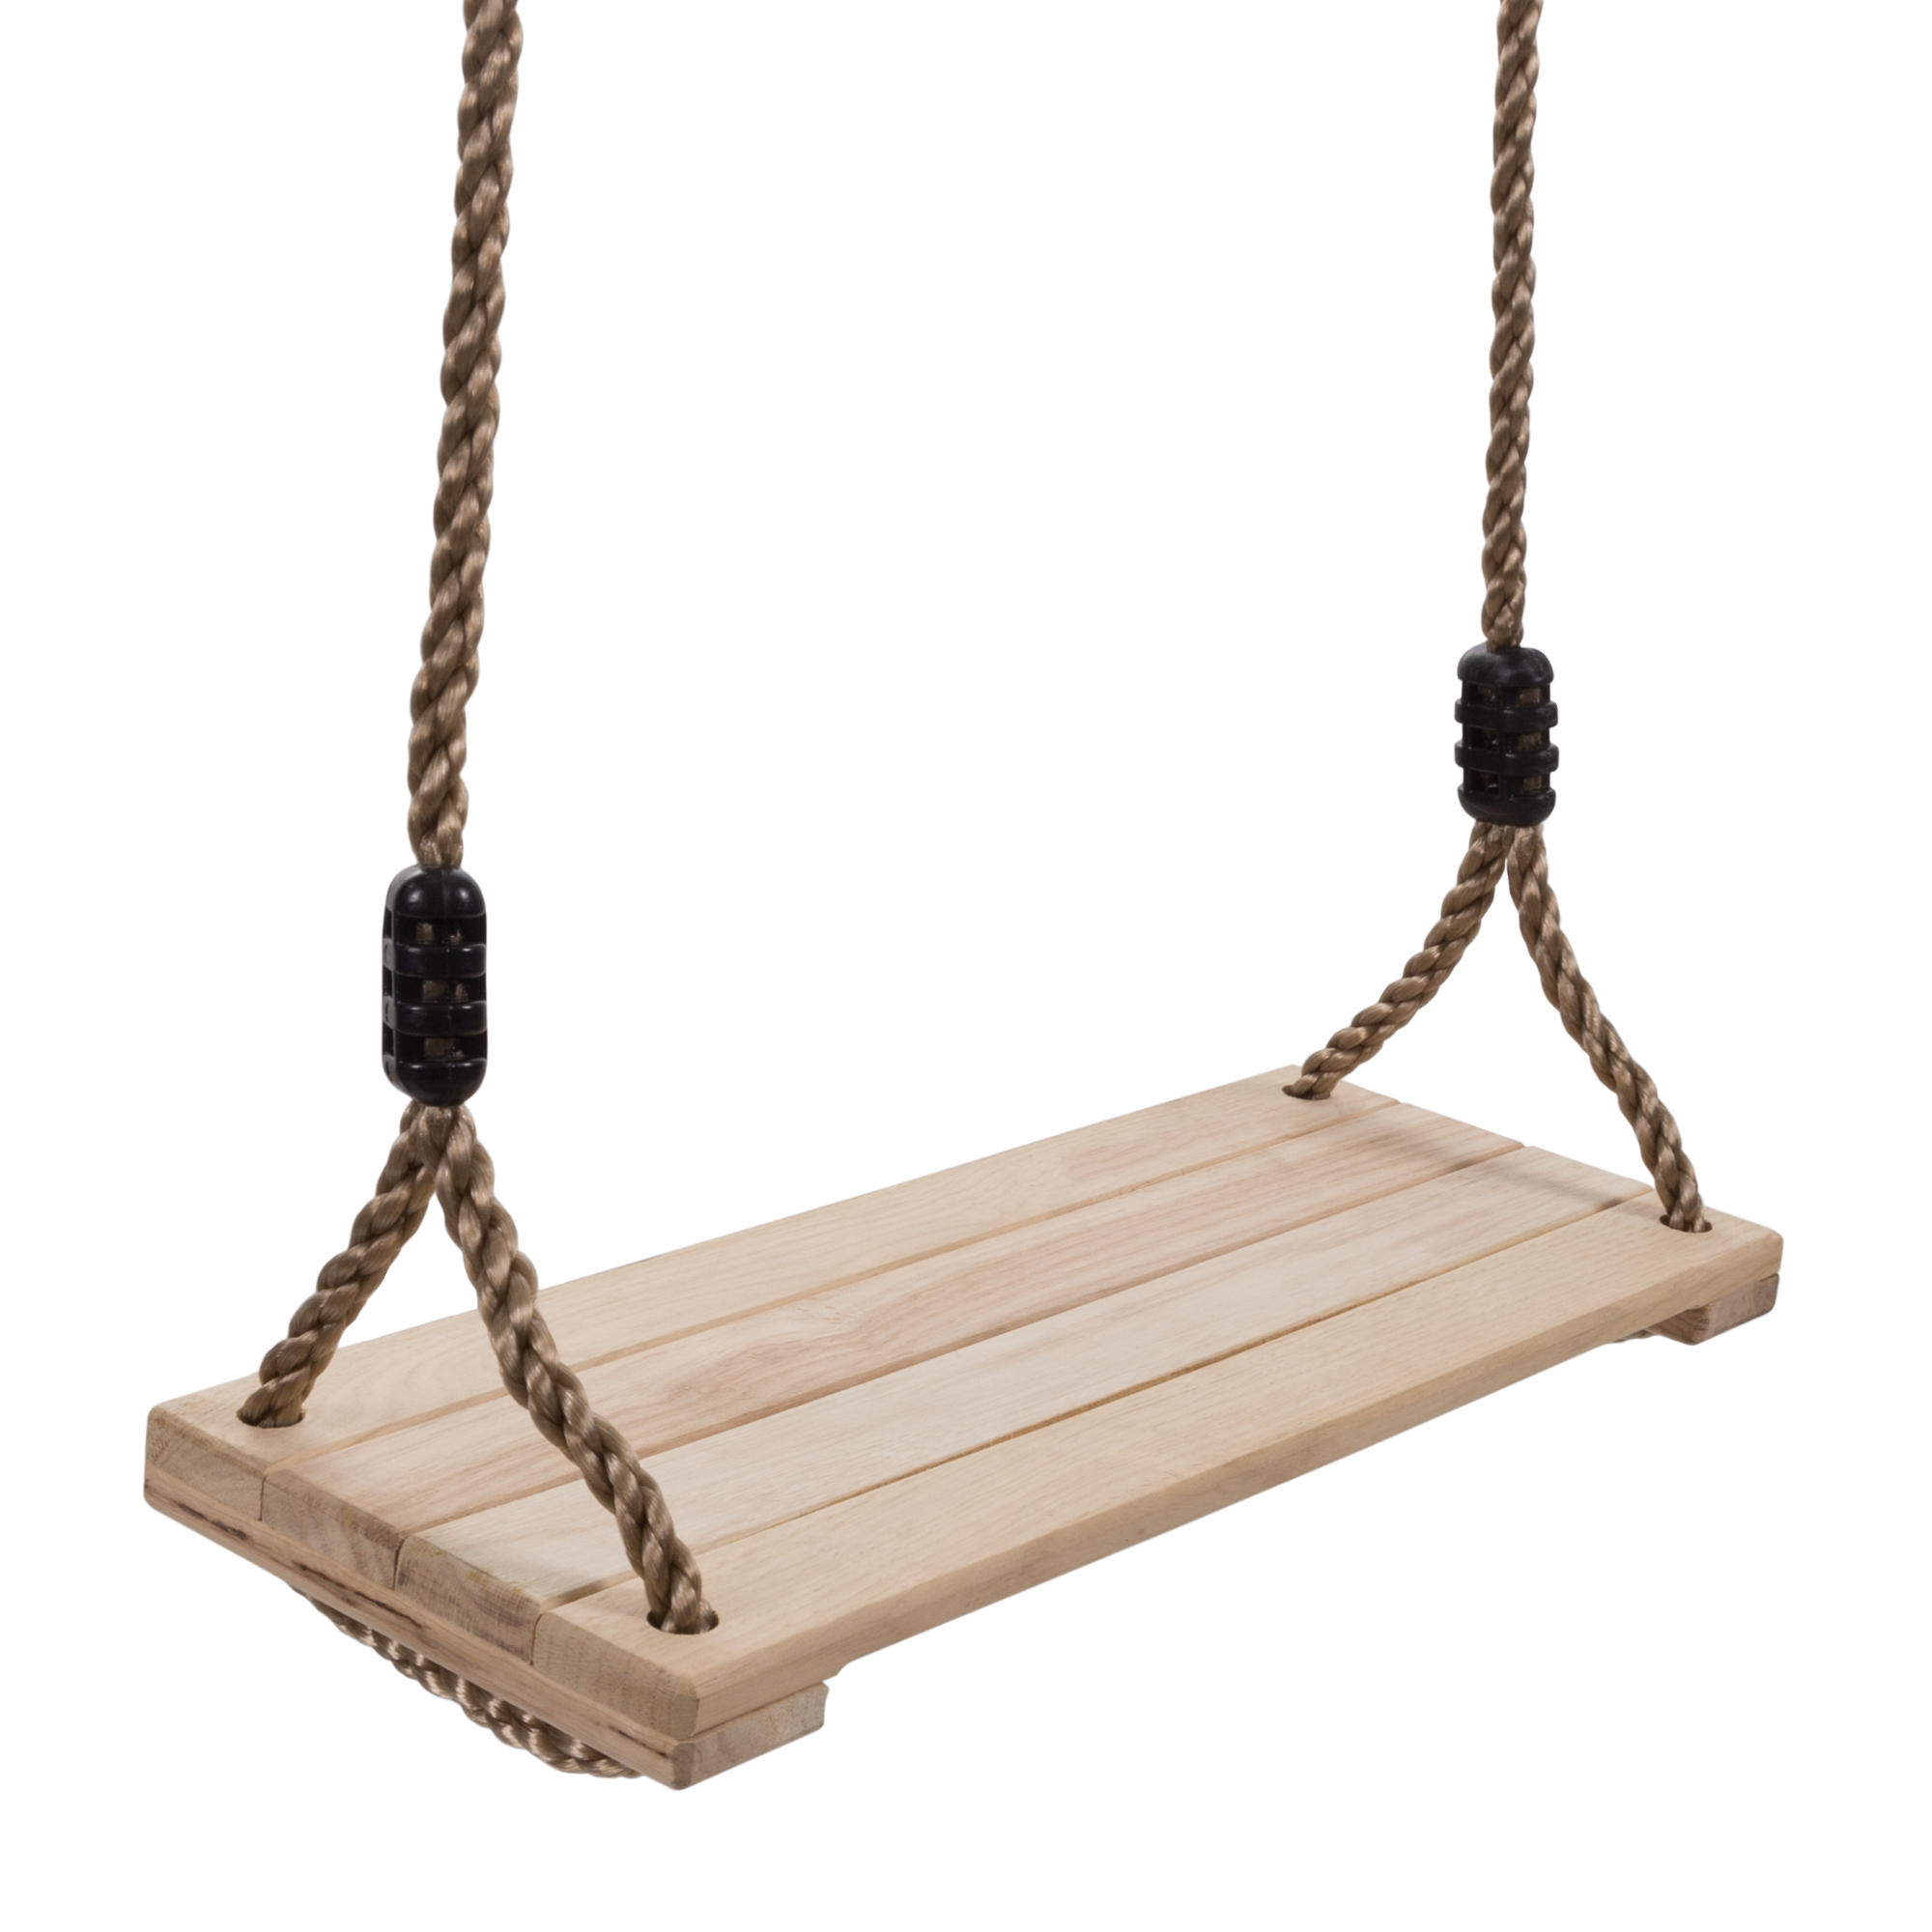 Wooden Swing, Outdoor Flat Bench Seat With Adjustable Nylon With Outdoor FurnitureYacht Club 2 Person Recycled Plastic Outdoor Swings (View 24 of 25)